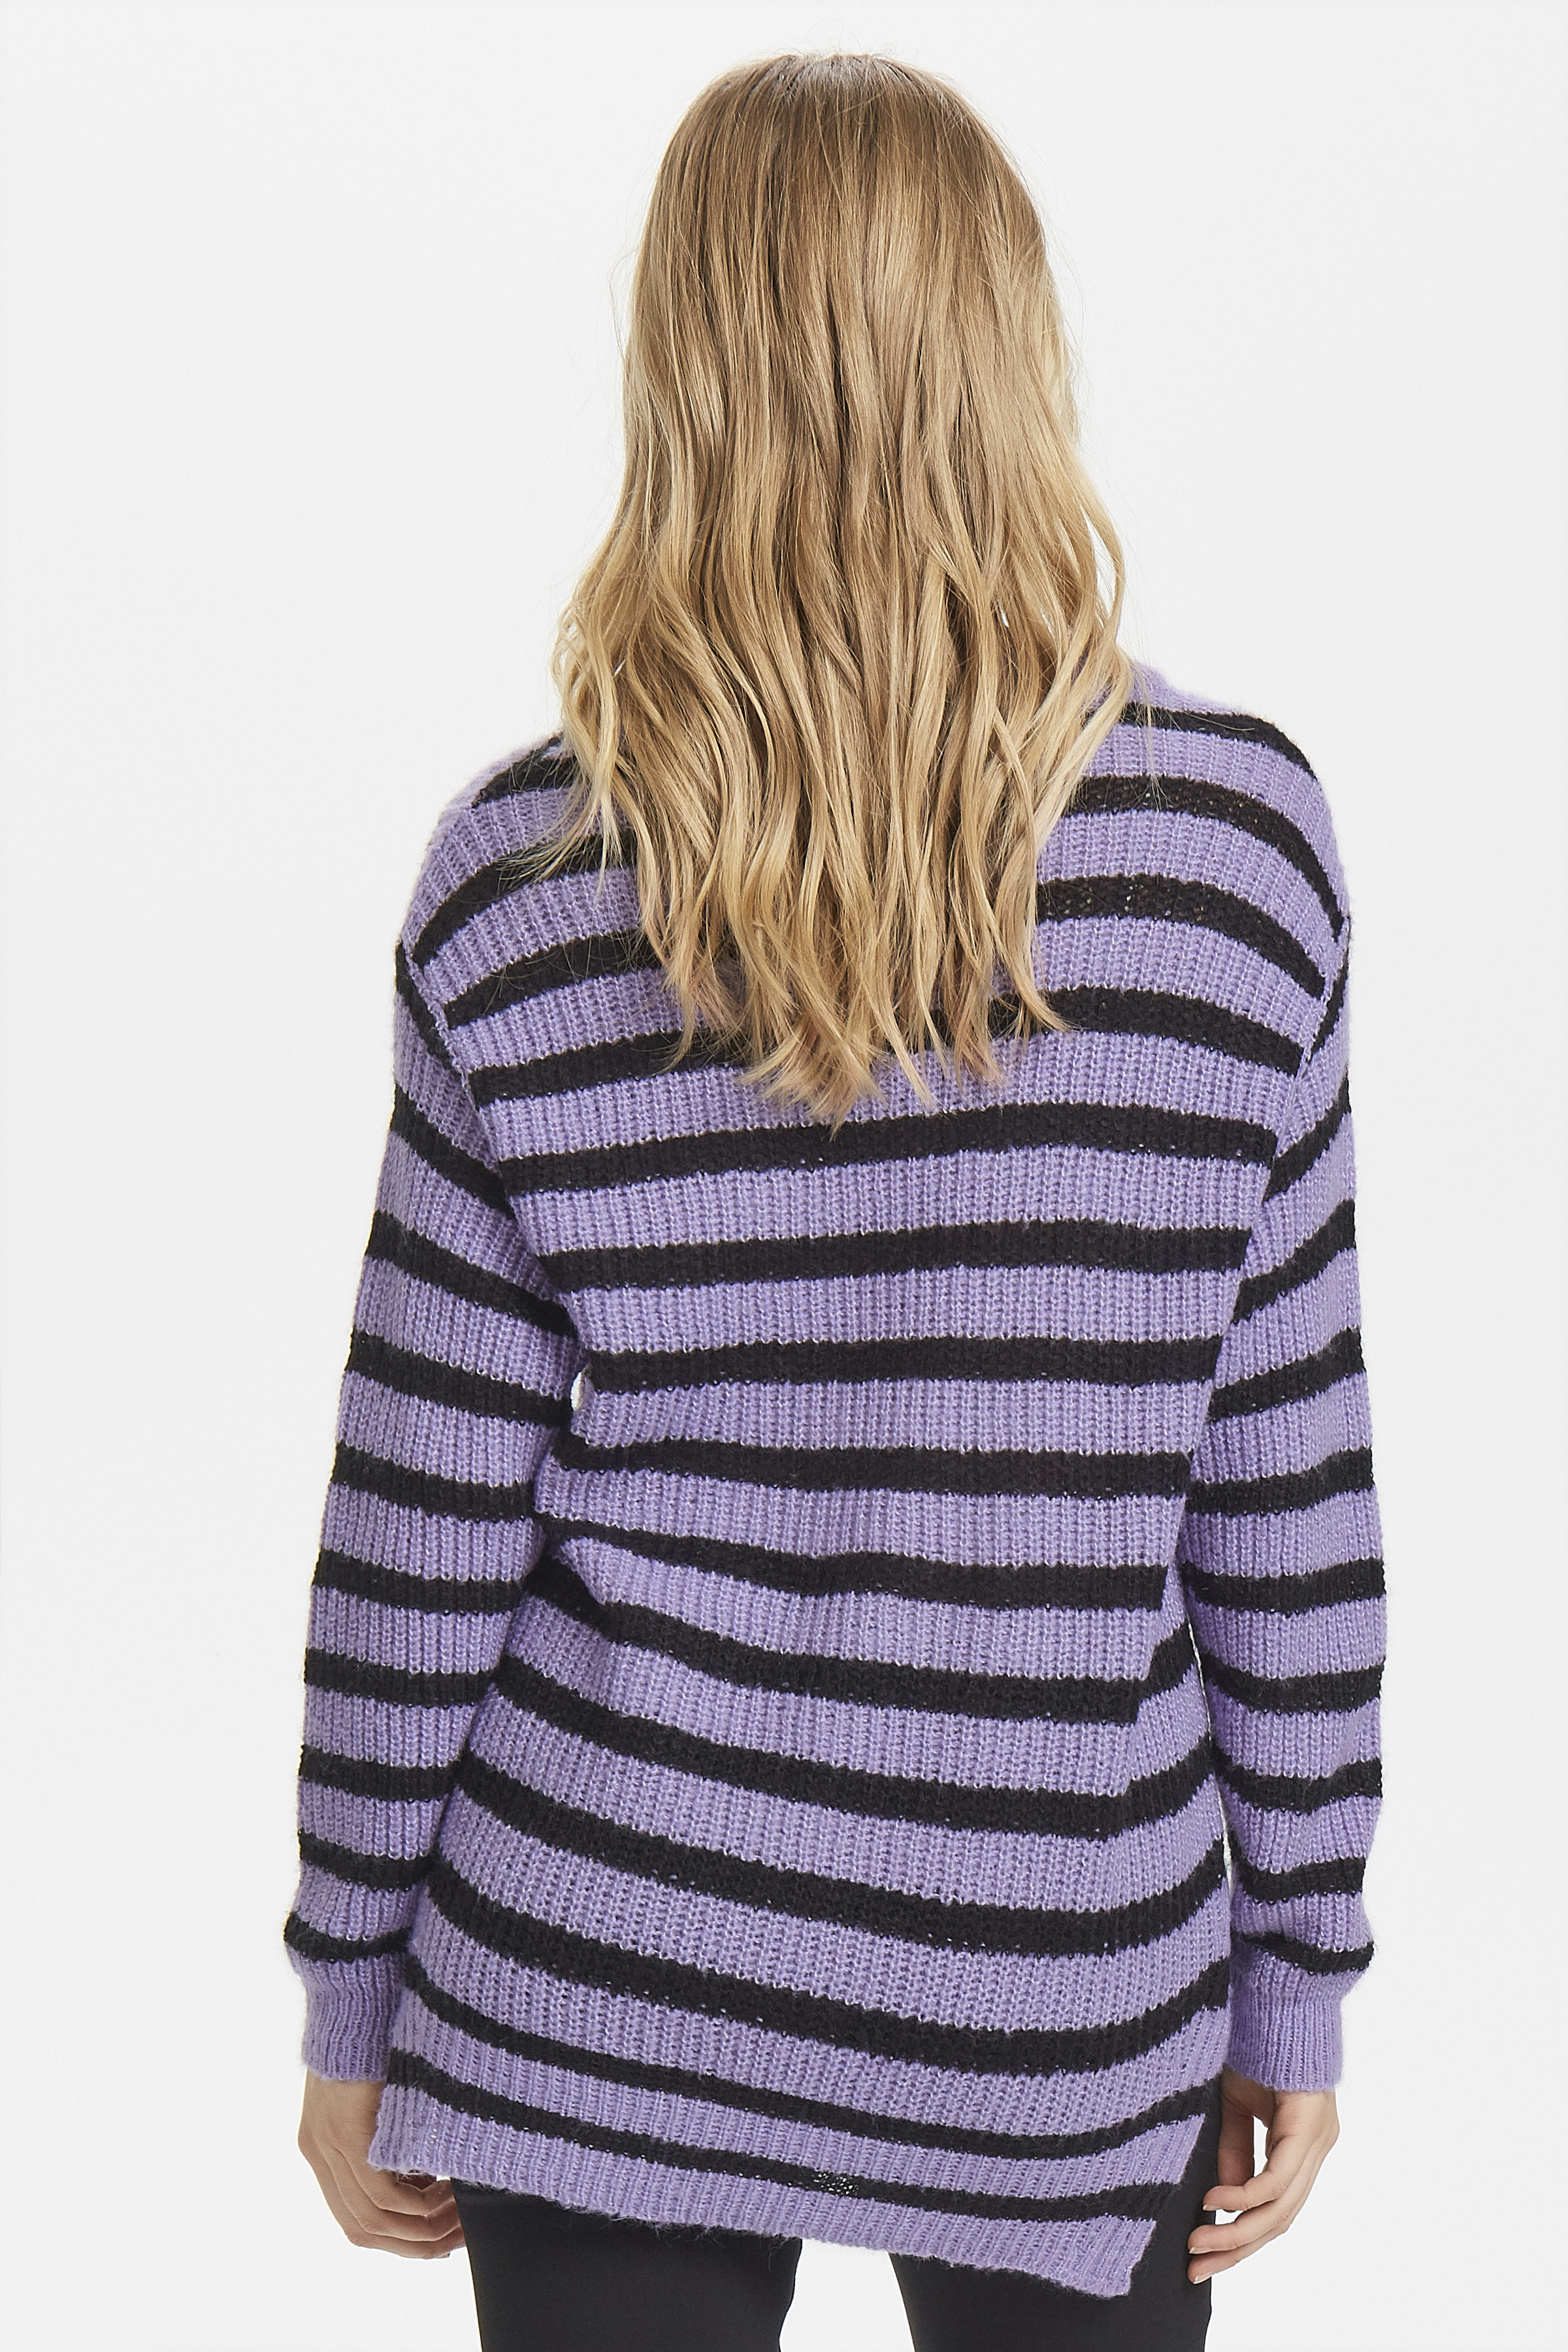 Violet Tulip Combi Knitted pullover from b.young – Buy Violet Tulip Combi Knitted pullover from size XS-XXL here